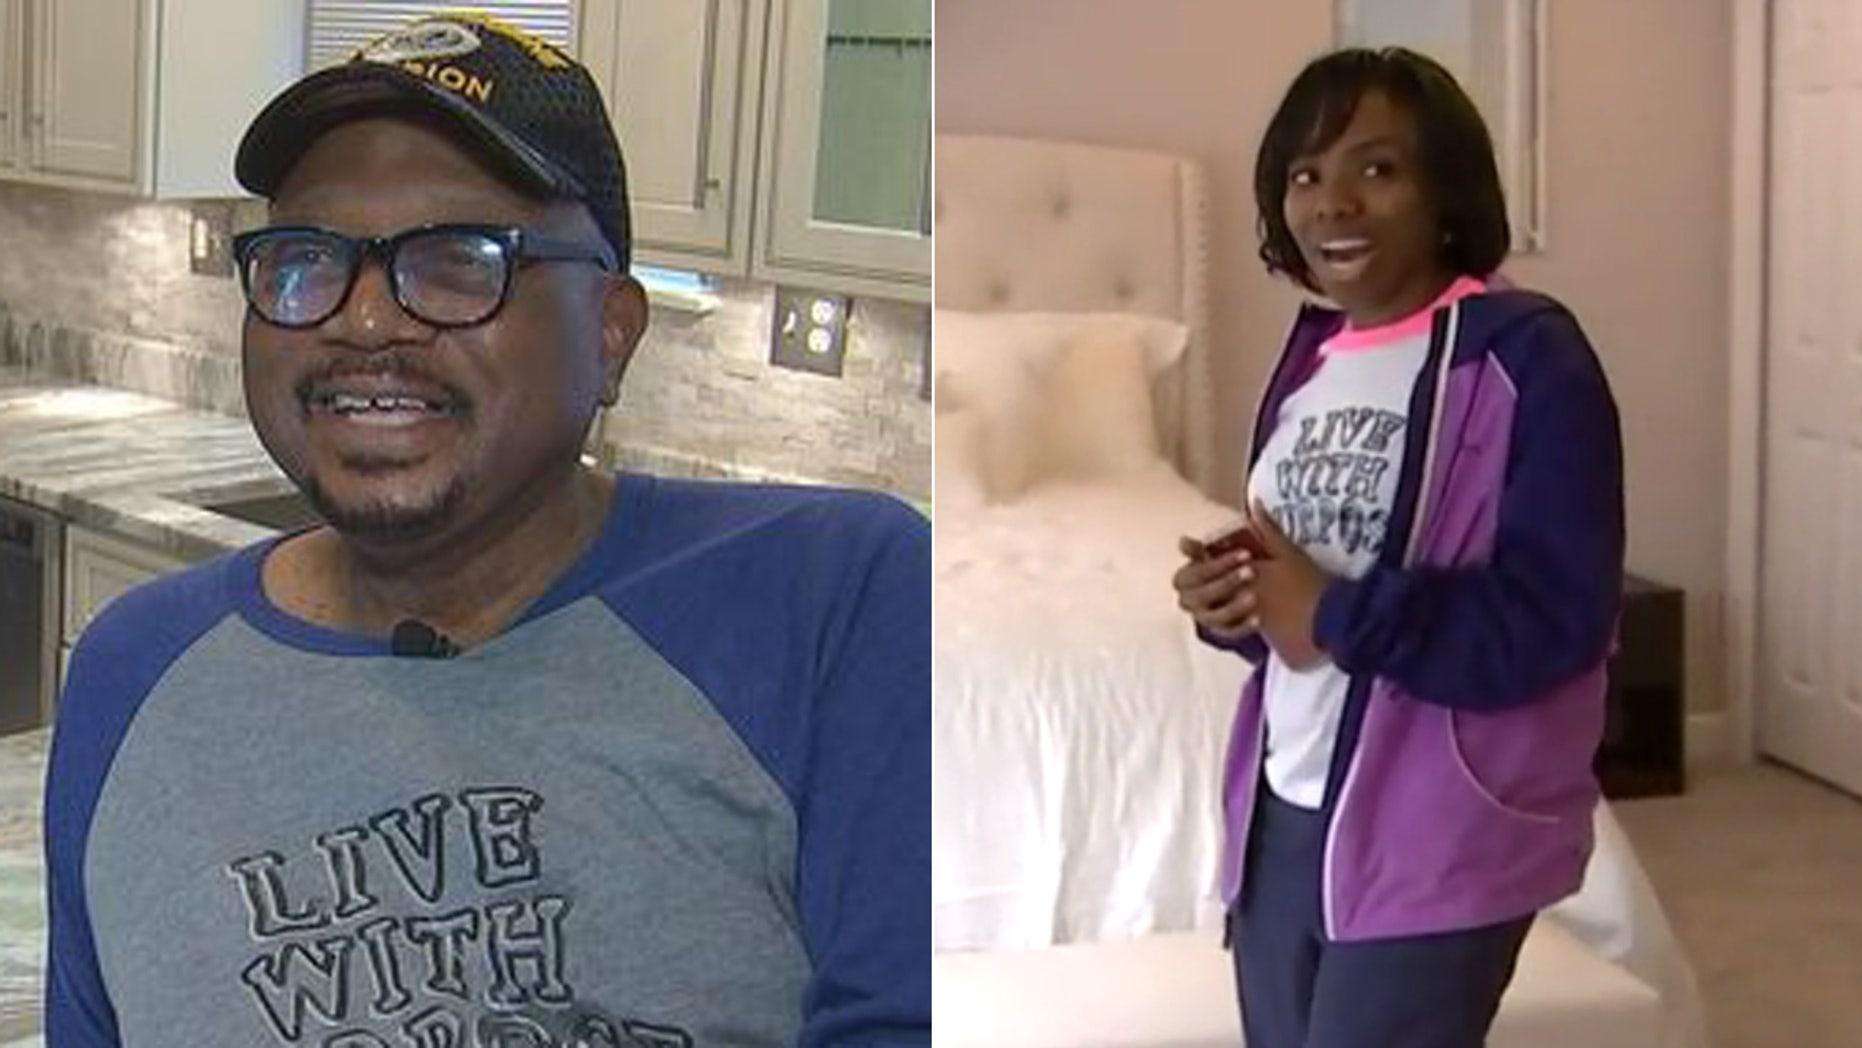 Mark, an Army veteran, and his granddaughter, Taj Renee, were surprised by a local design company.